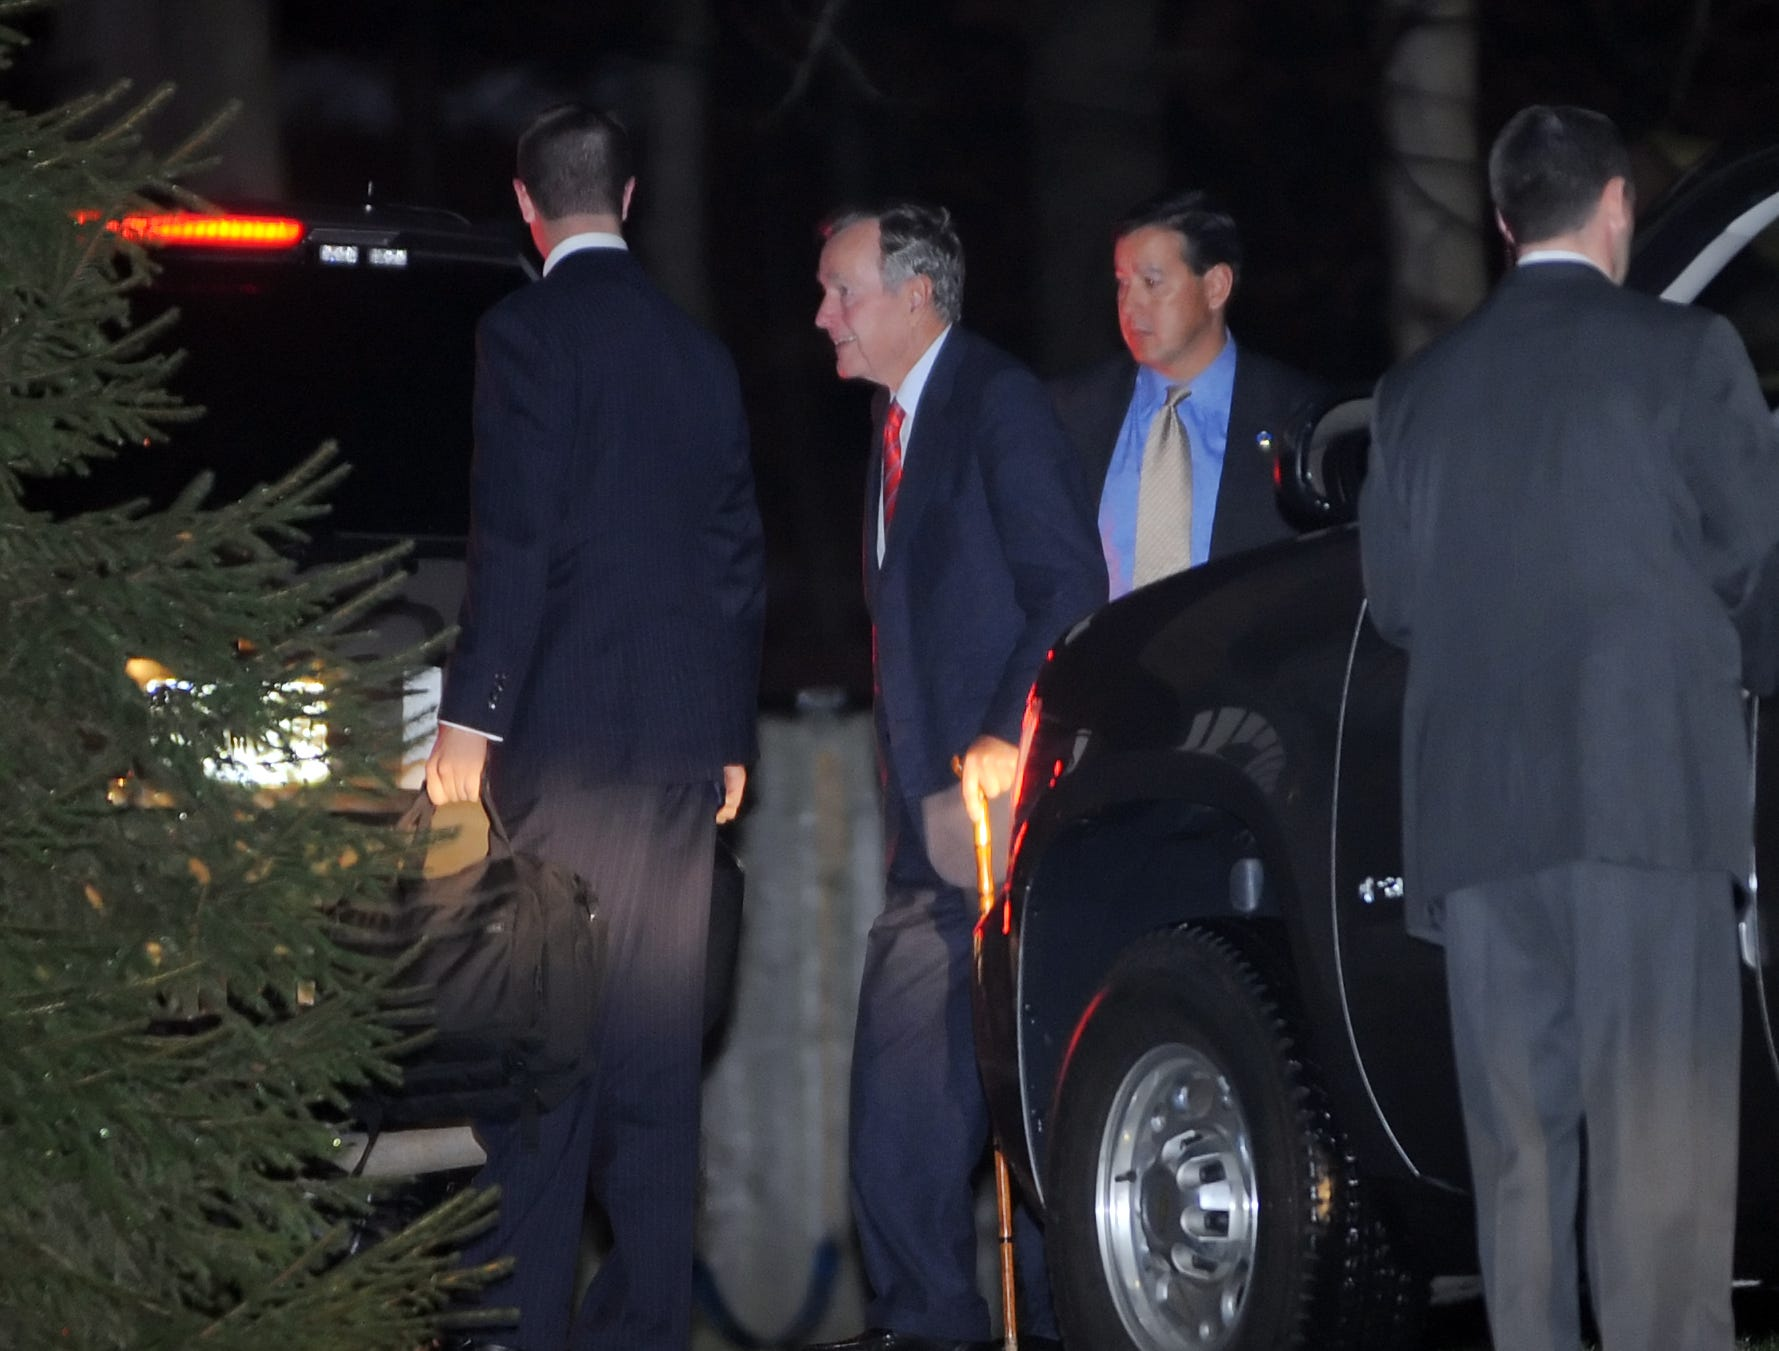 Former President George H.W. Bush is greeted as he arrives at 4270 N Meridian St. for a charity event to benefit Alzheimer's research in this undated photo.